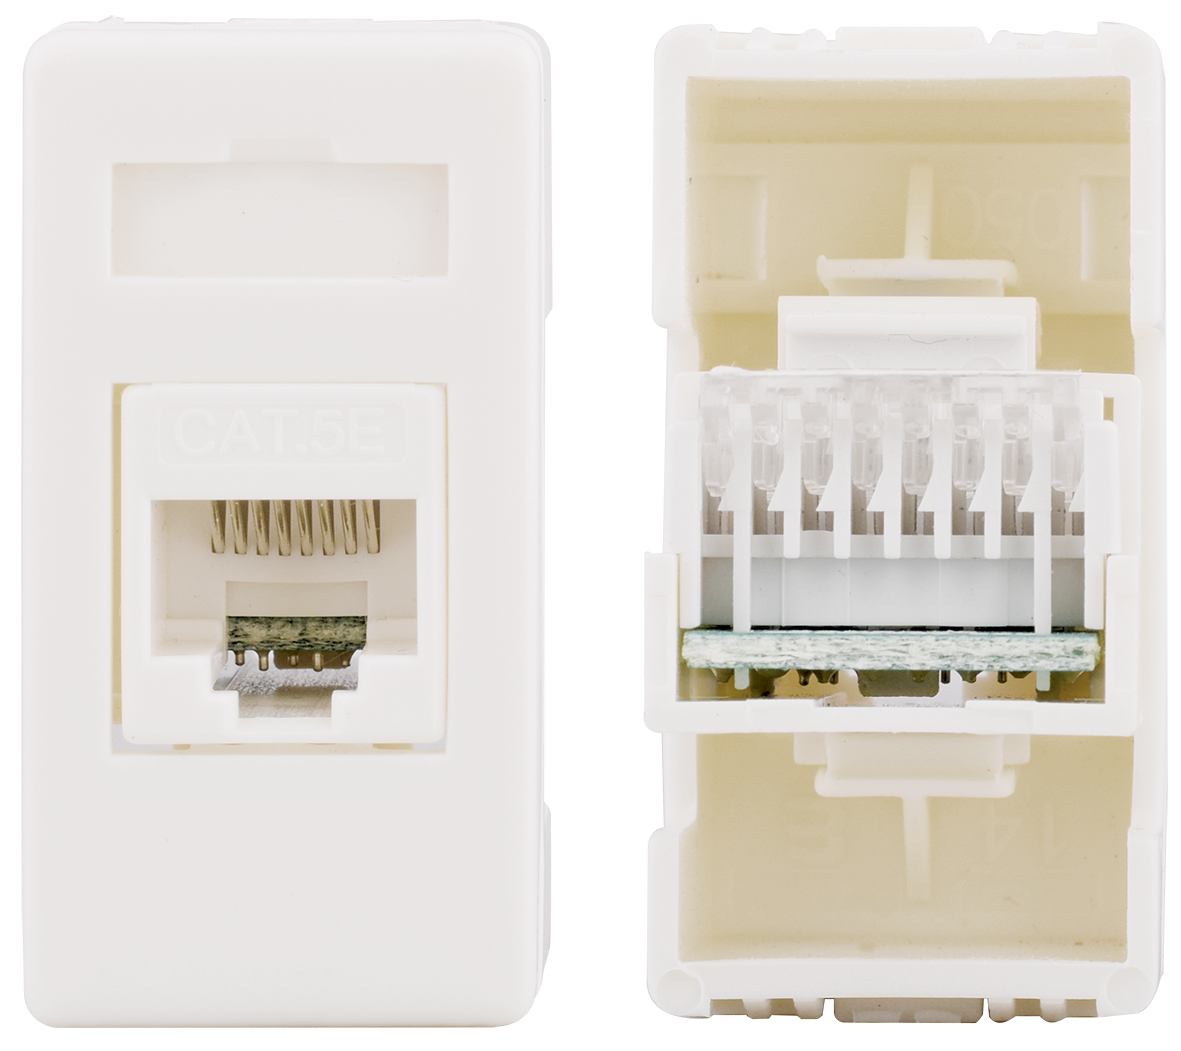 Computer socket CAT5e (ivory)